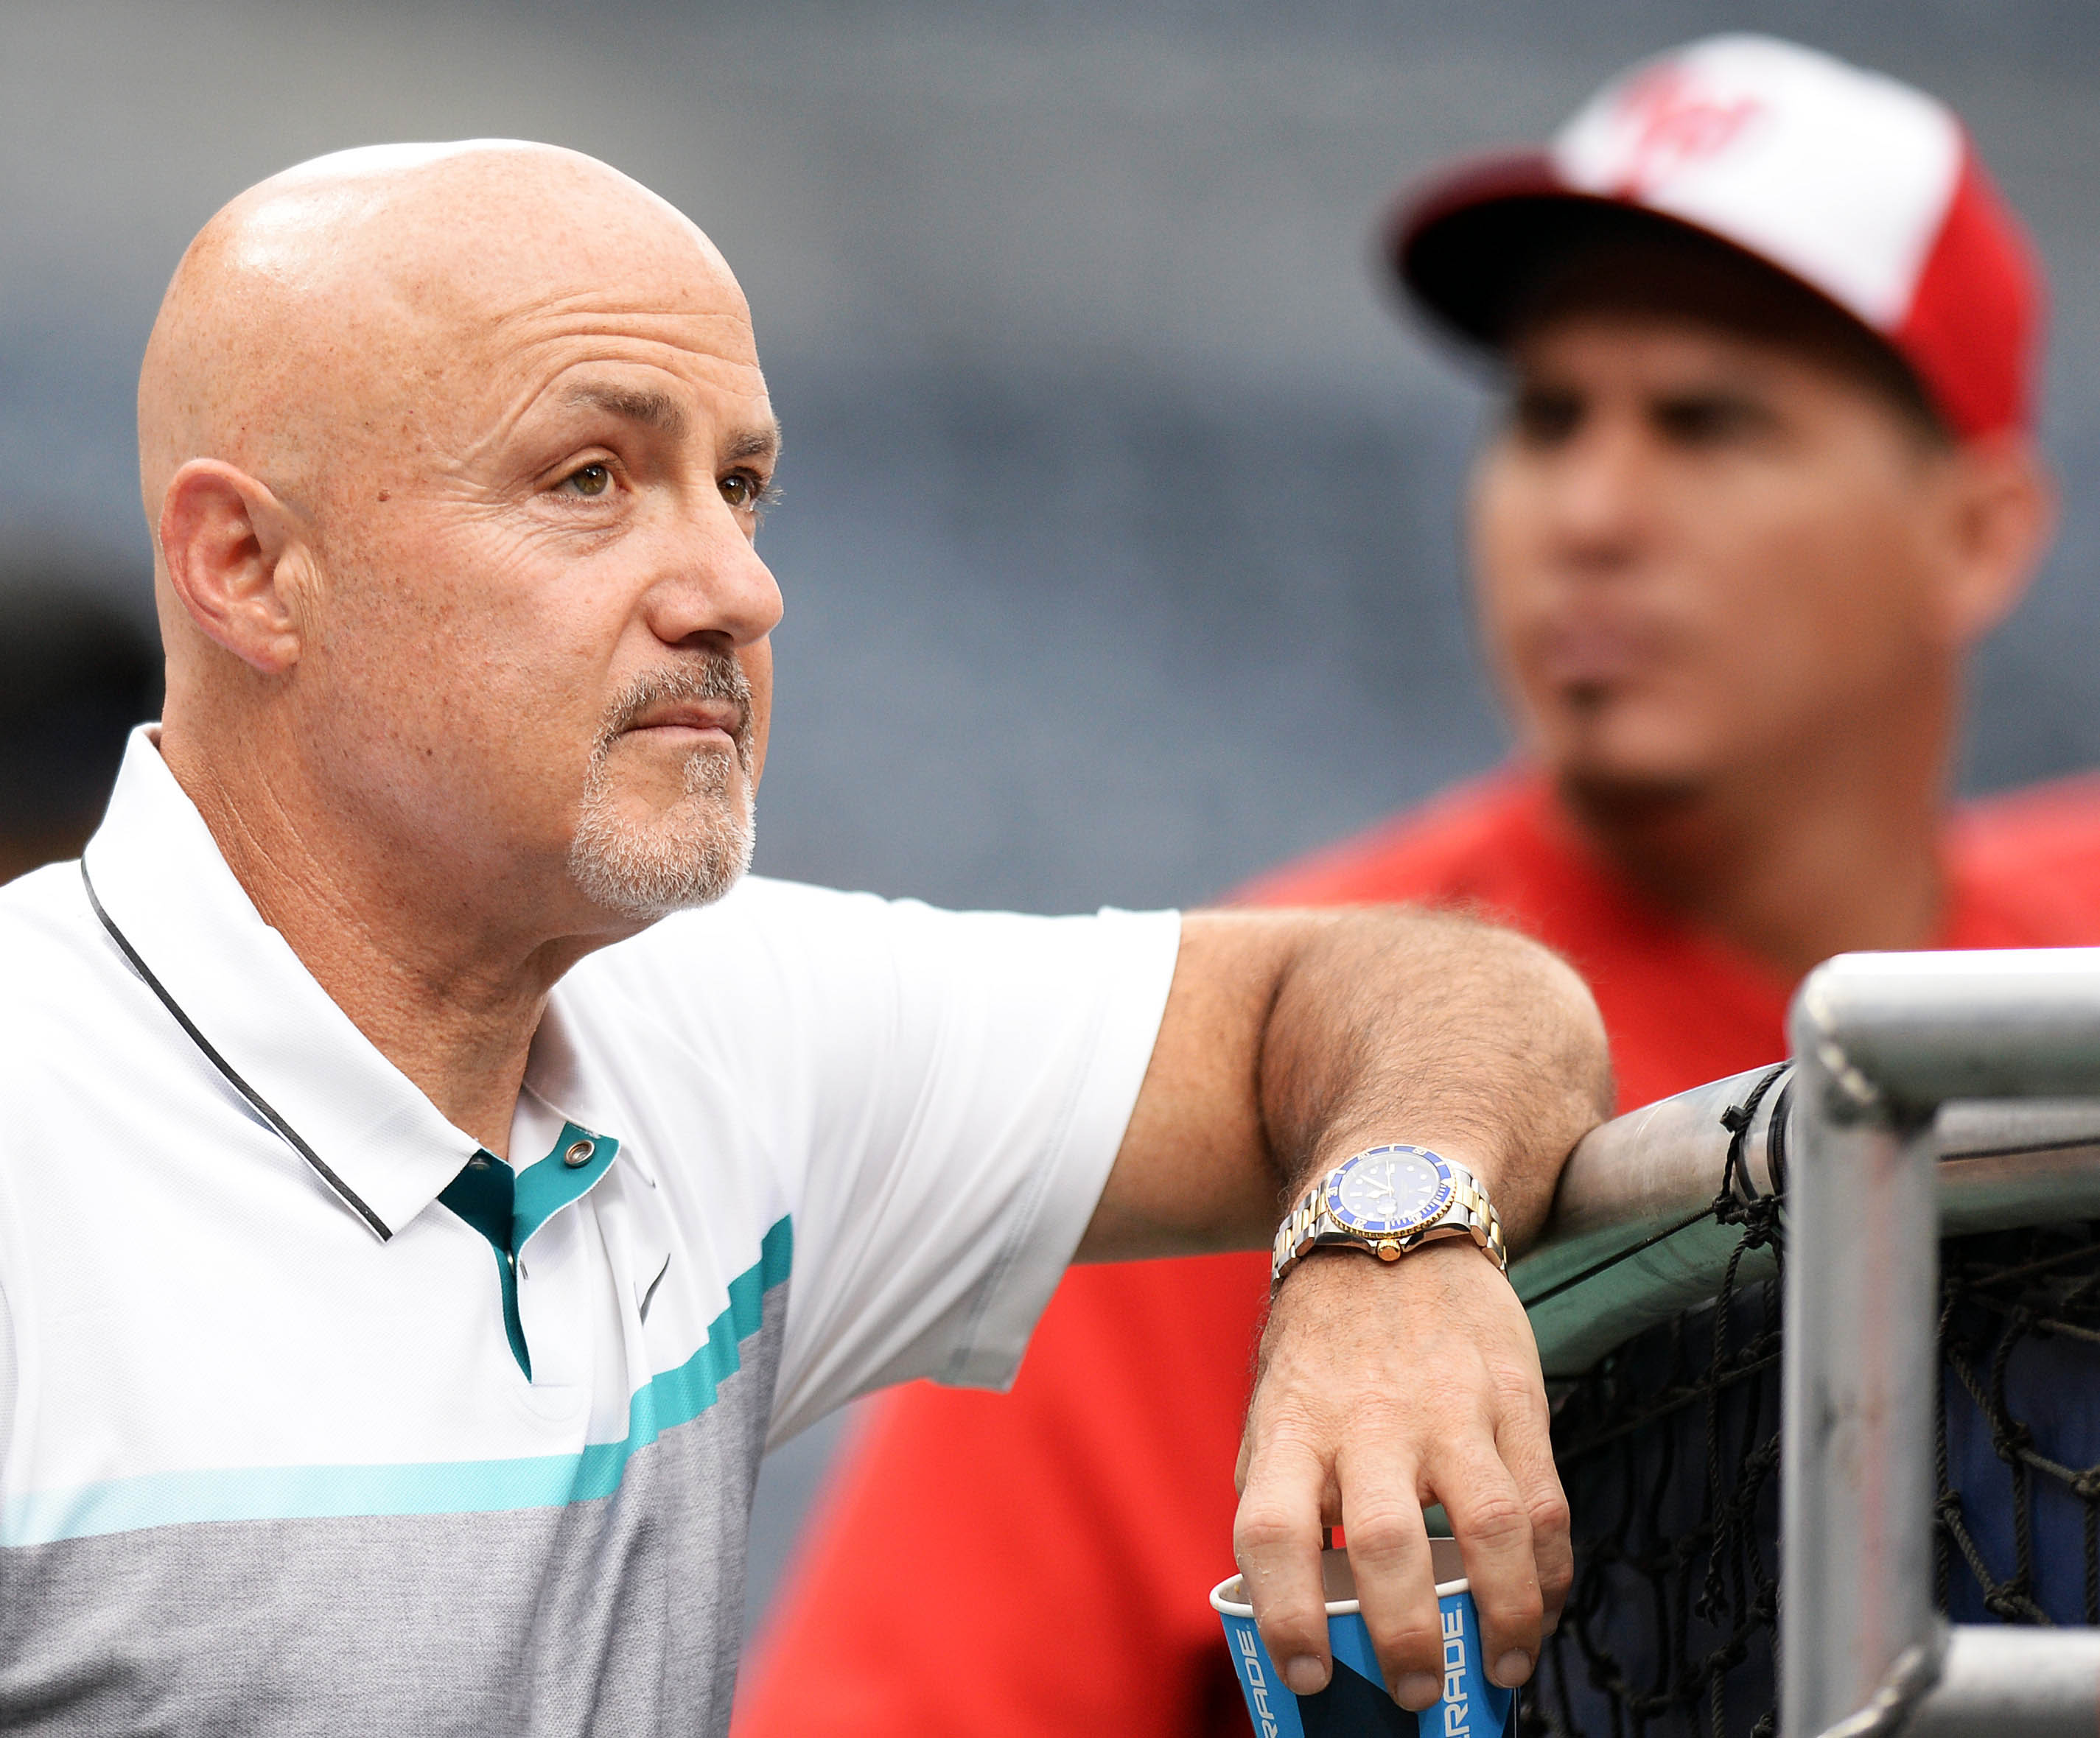 Could Mike Rizzo be returning to the desert after the postseason?